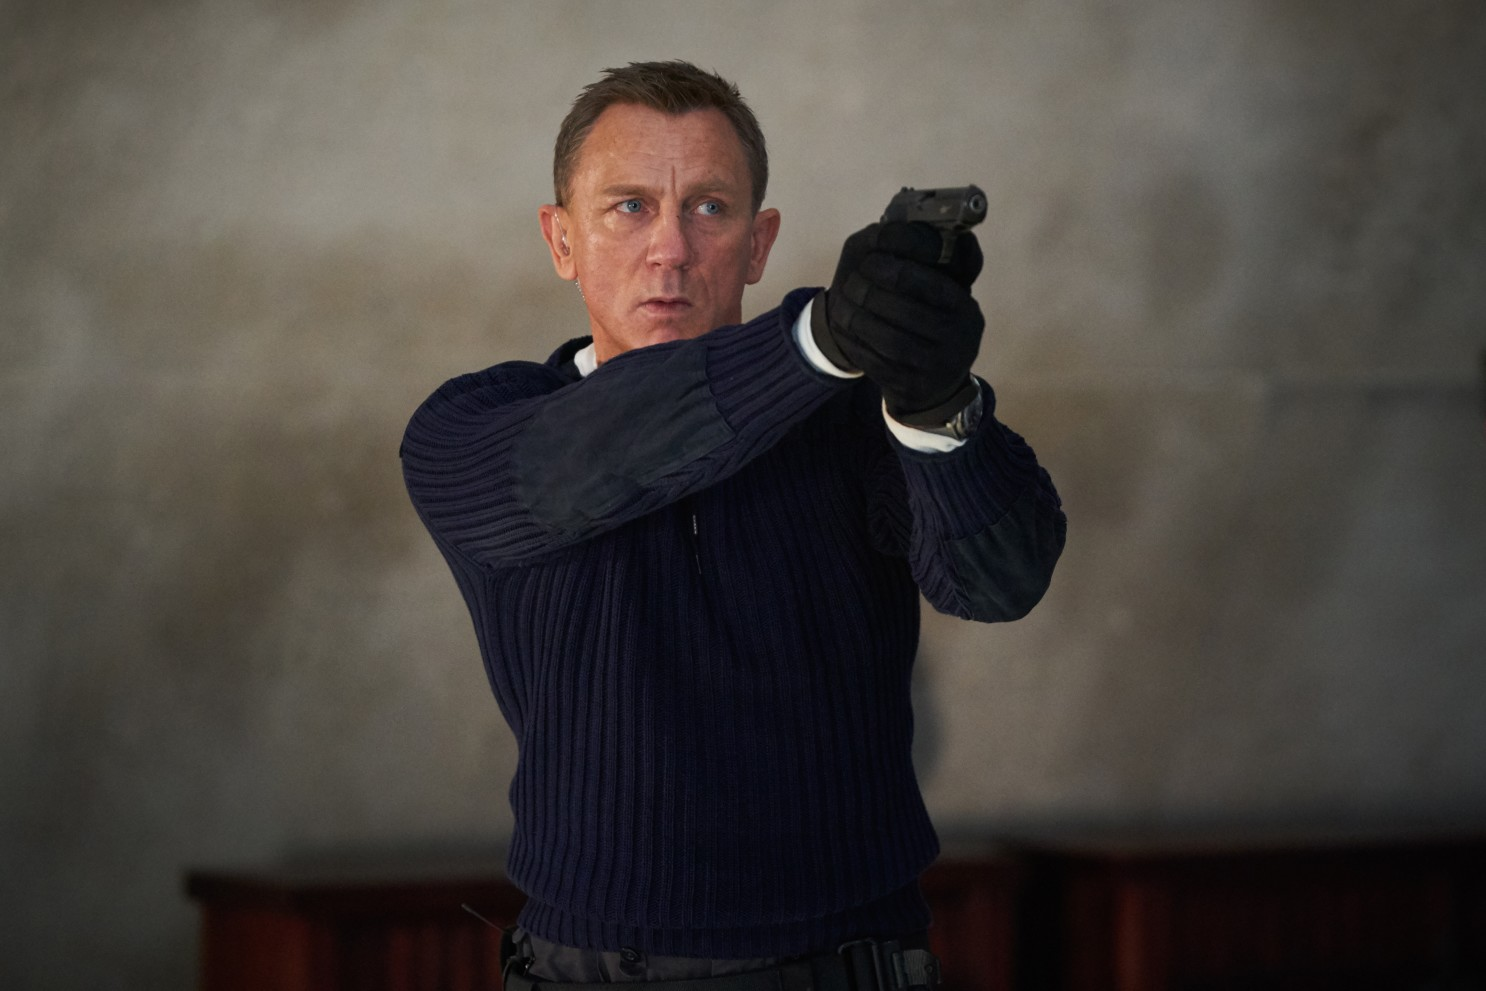 Not Time To Die is worth the wait, and it's an exit that is worthy of the most interesting version of Bond that we've seen to date.